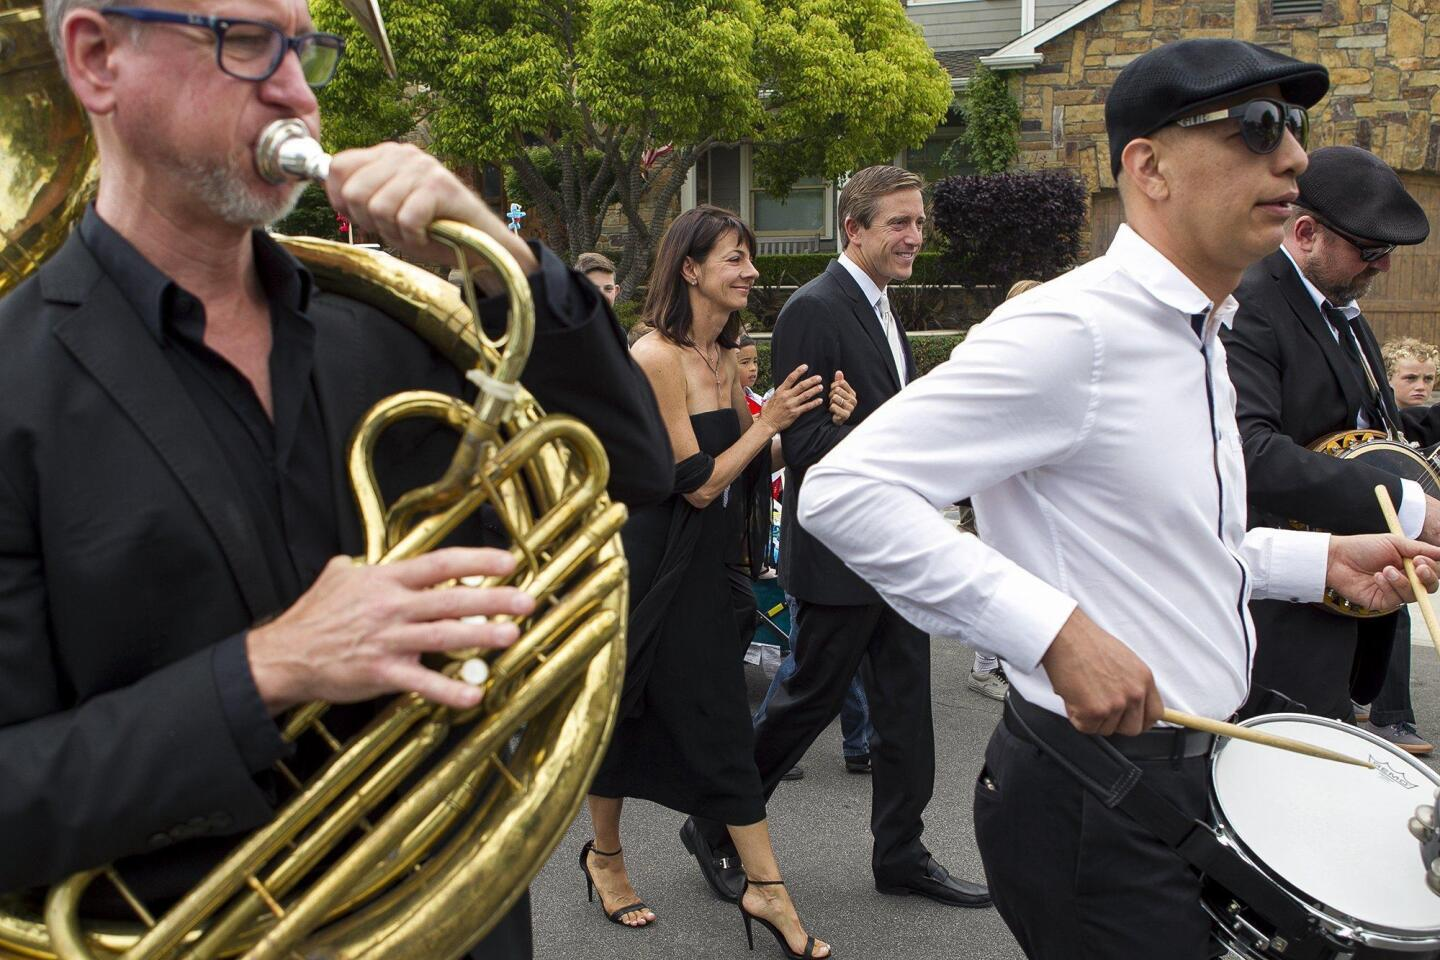 Bernadette and Murphy McCann, the parents of Brock McCann, a Newport Beach 8-year-old who was struck and killed by a trash truck in May, lead a New Orleans-style parade in memory of their son on Saturday.